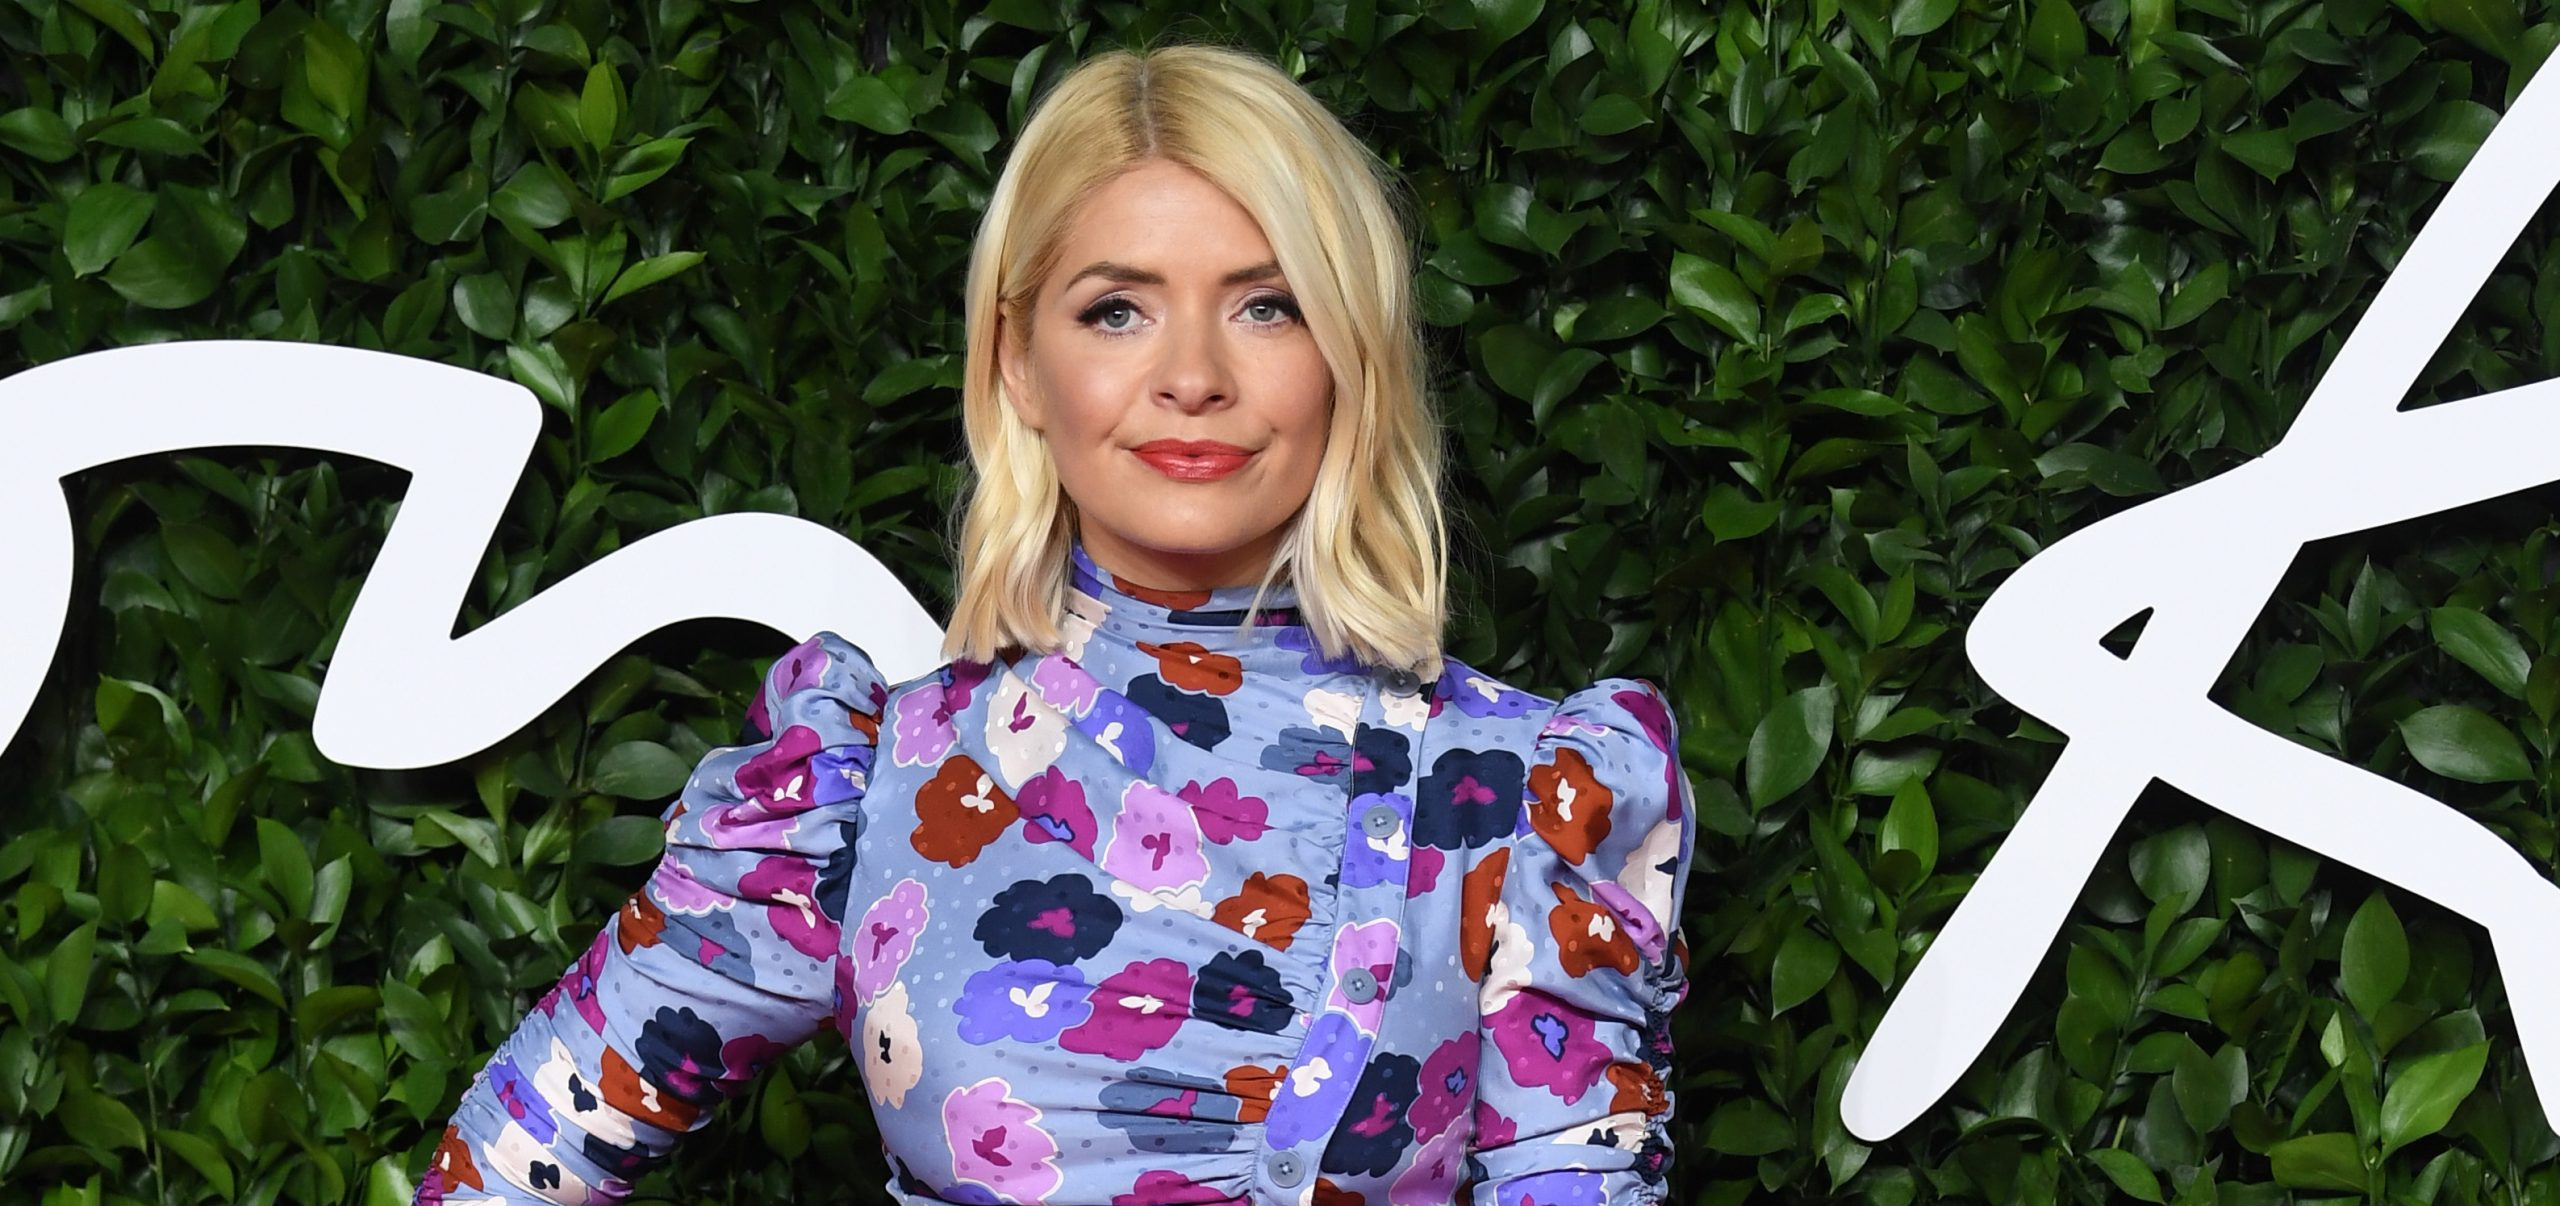 Holly Willoughby melts hearts with 'inspirational' picture of daughter Belle